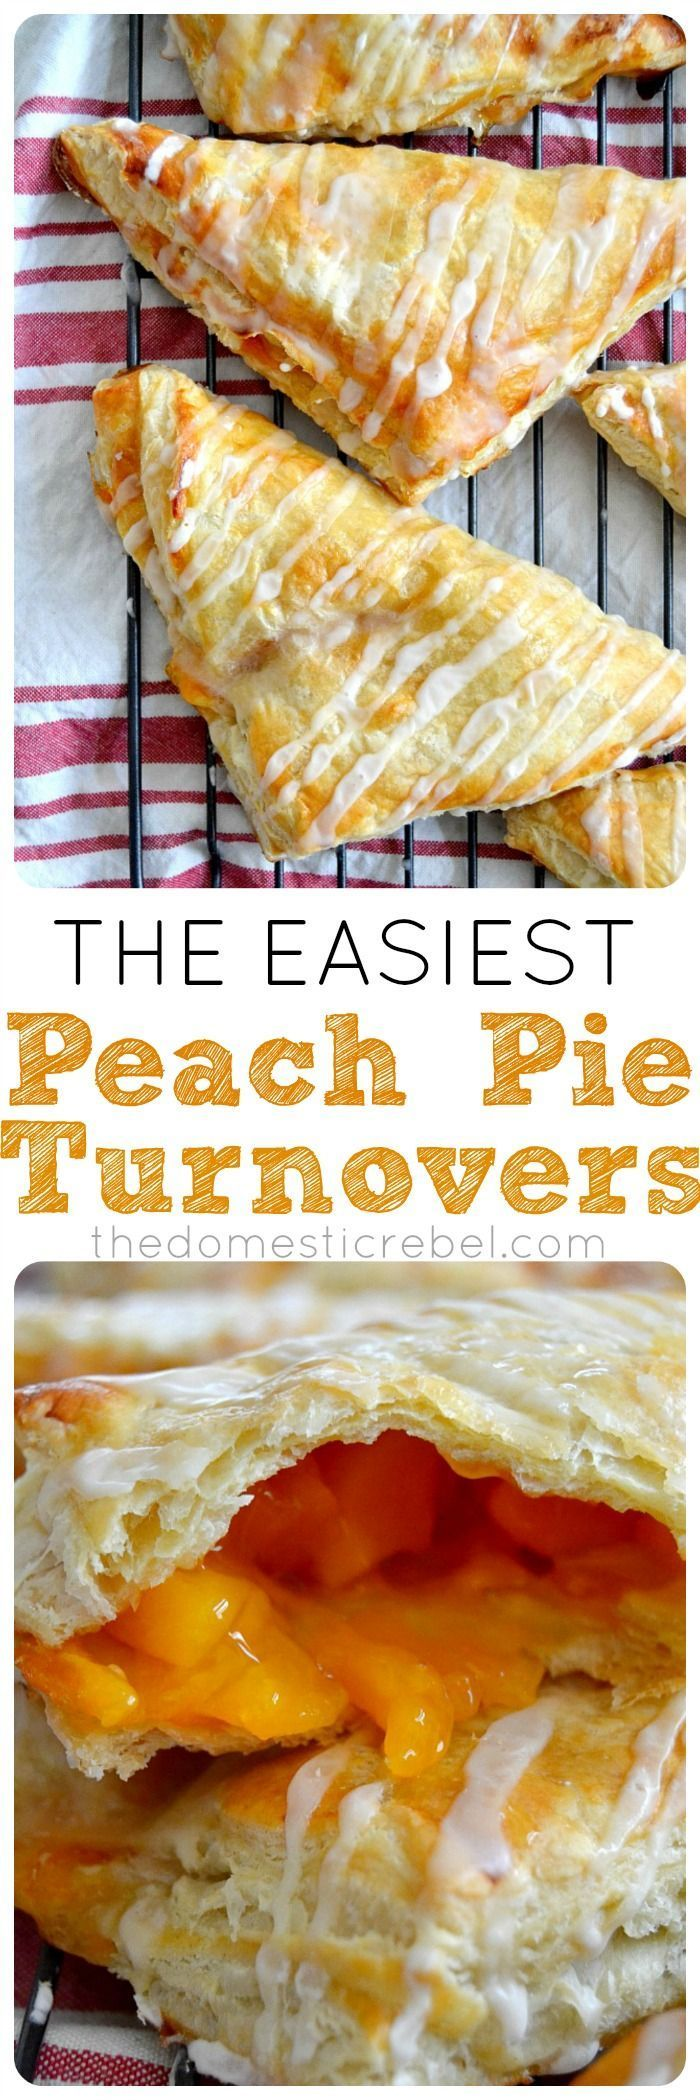 These Peach Pie Turnovers are the EASIEST you'll ever make! Three ingredients, one outrageously delicious, gooey peach turnover. You need this recipe!